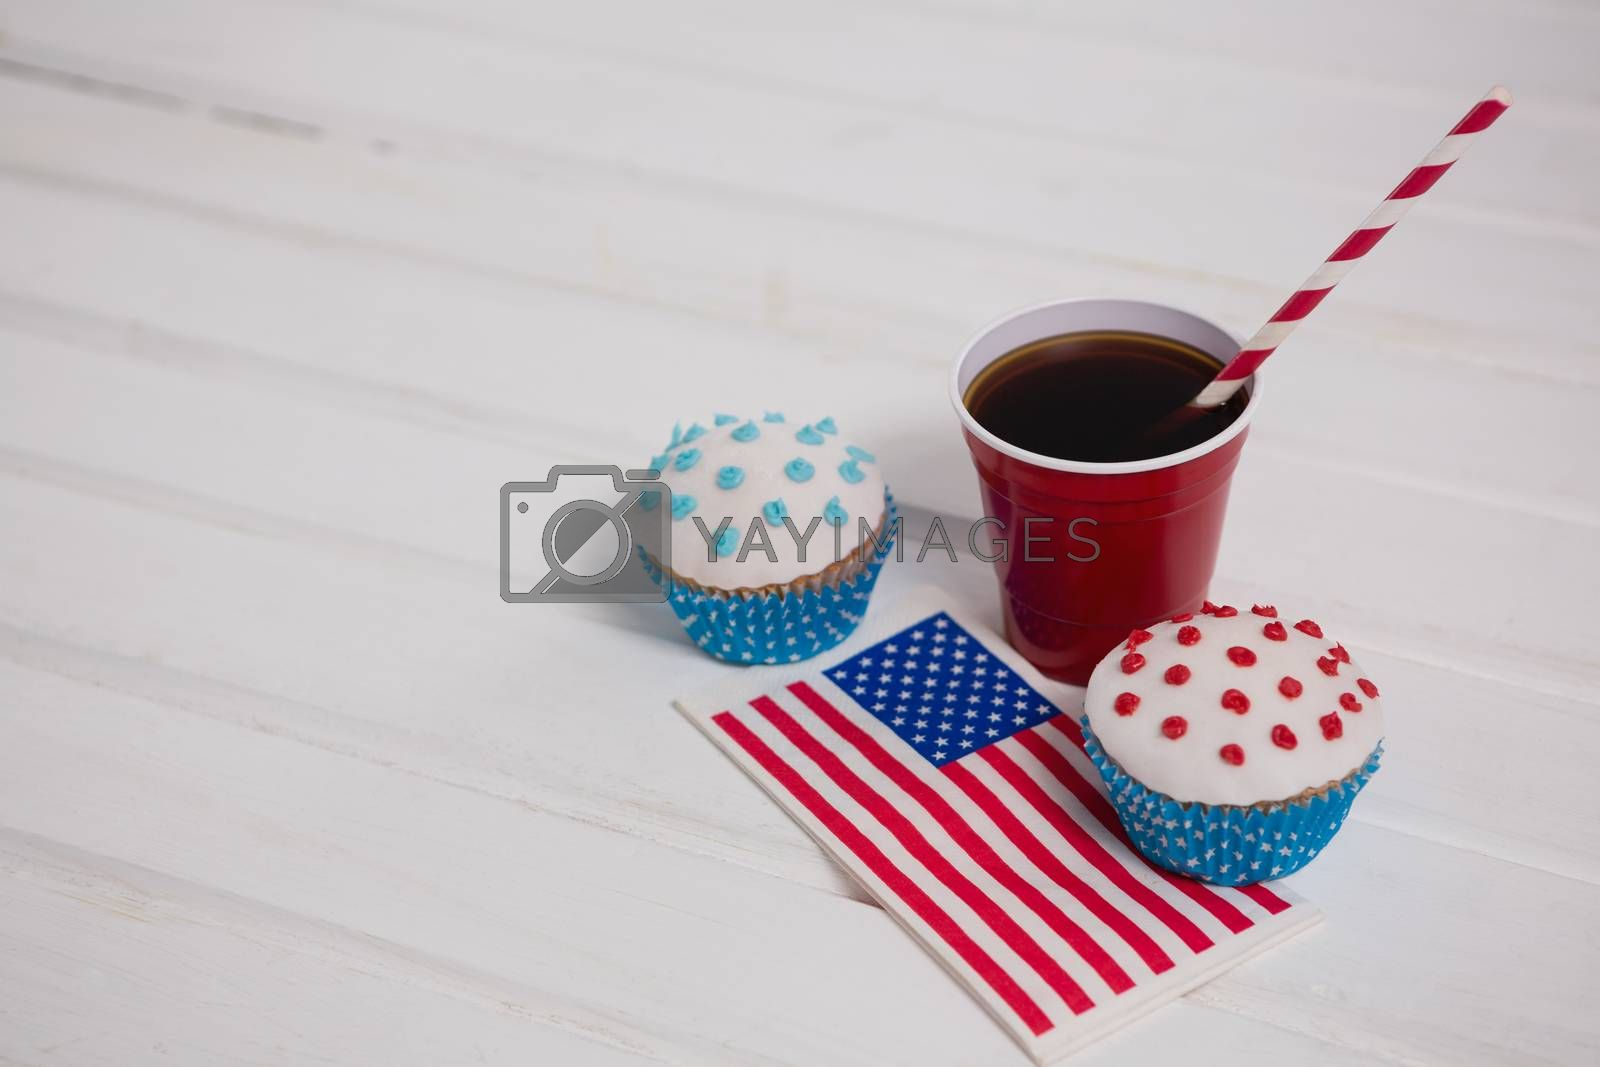 Decorated cupcakes and cold drink with 4th july theme on wooden table